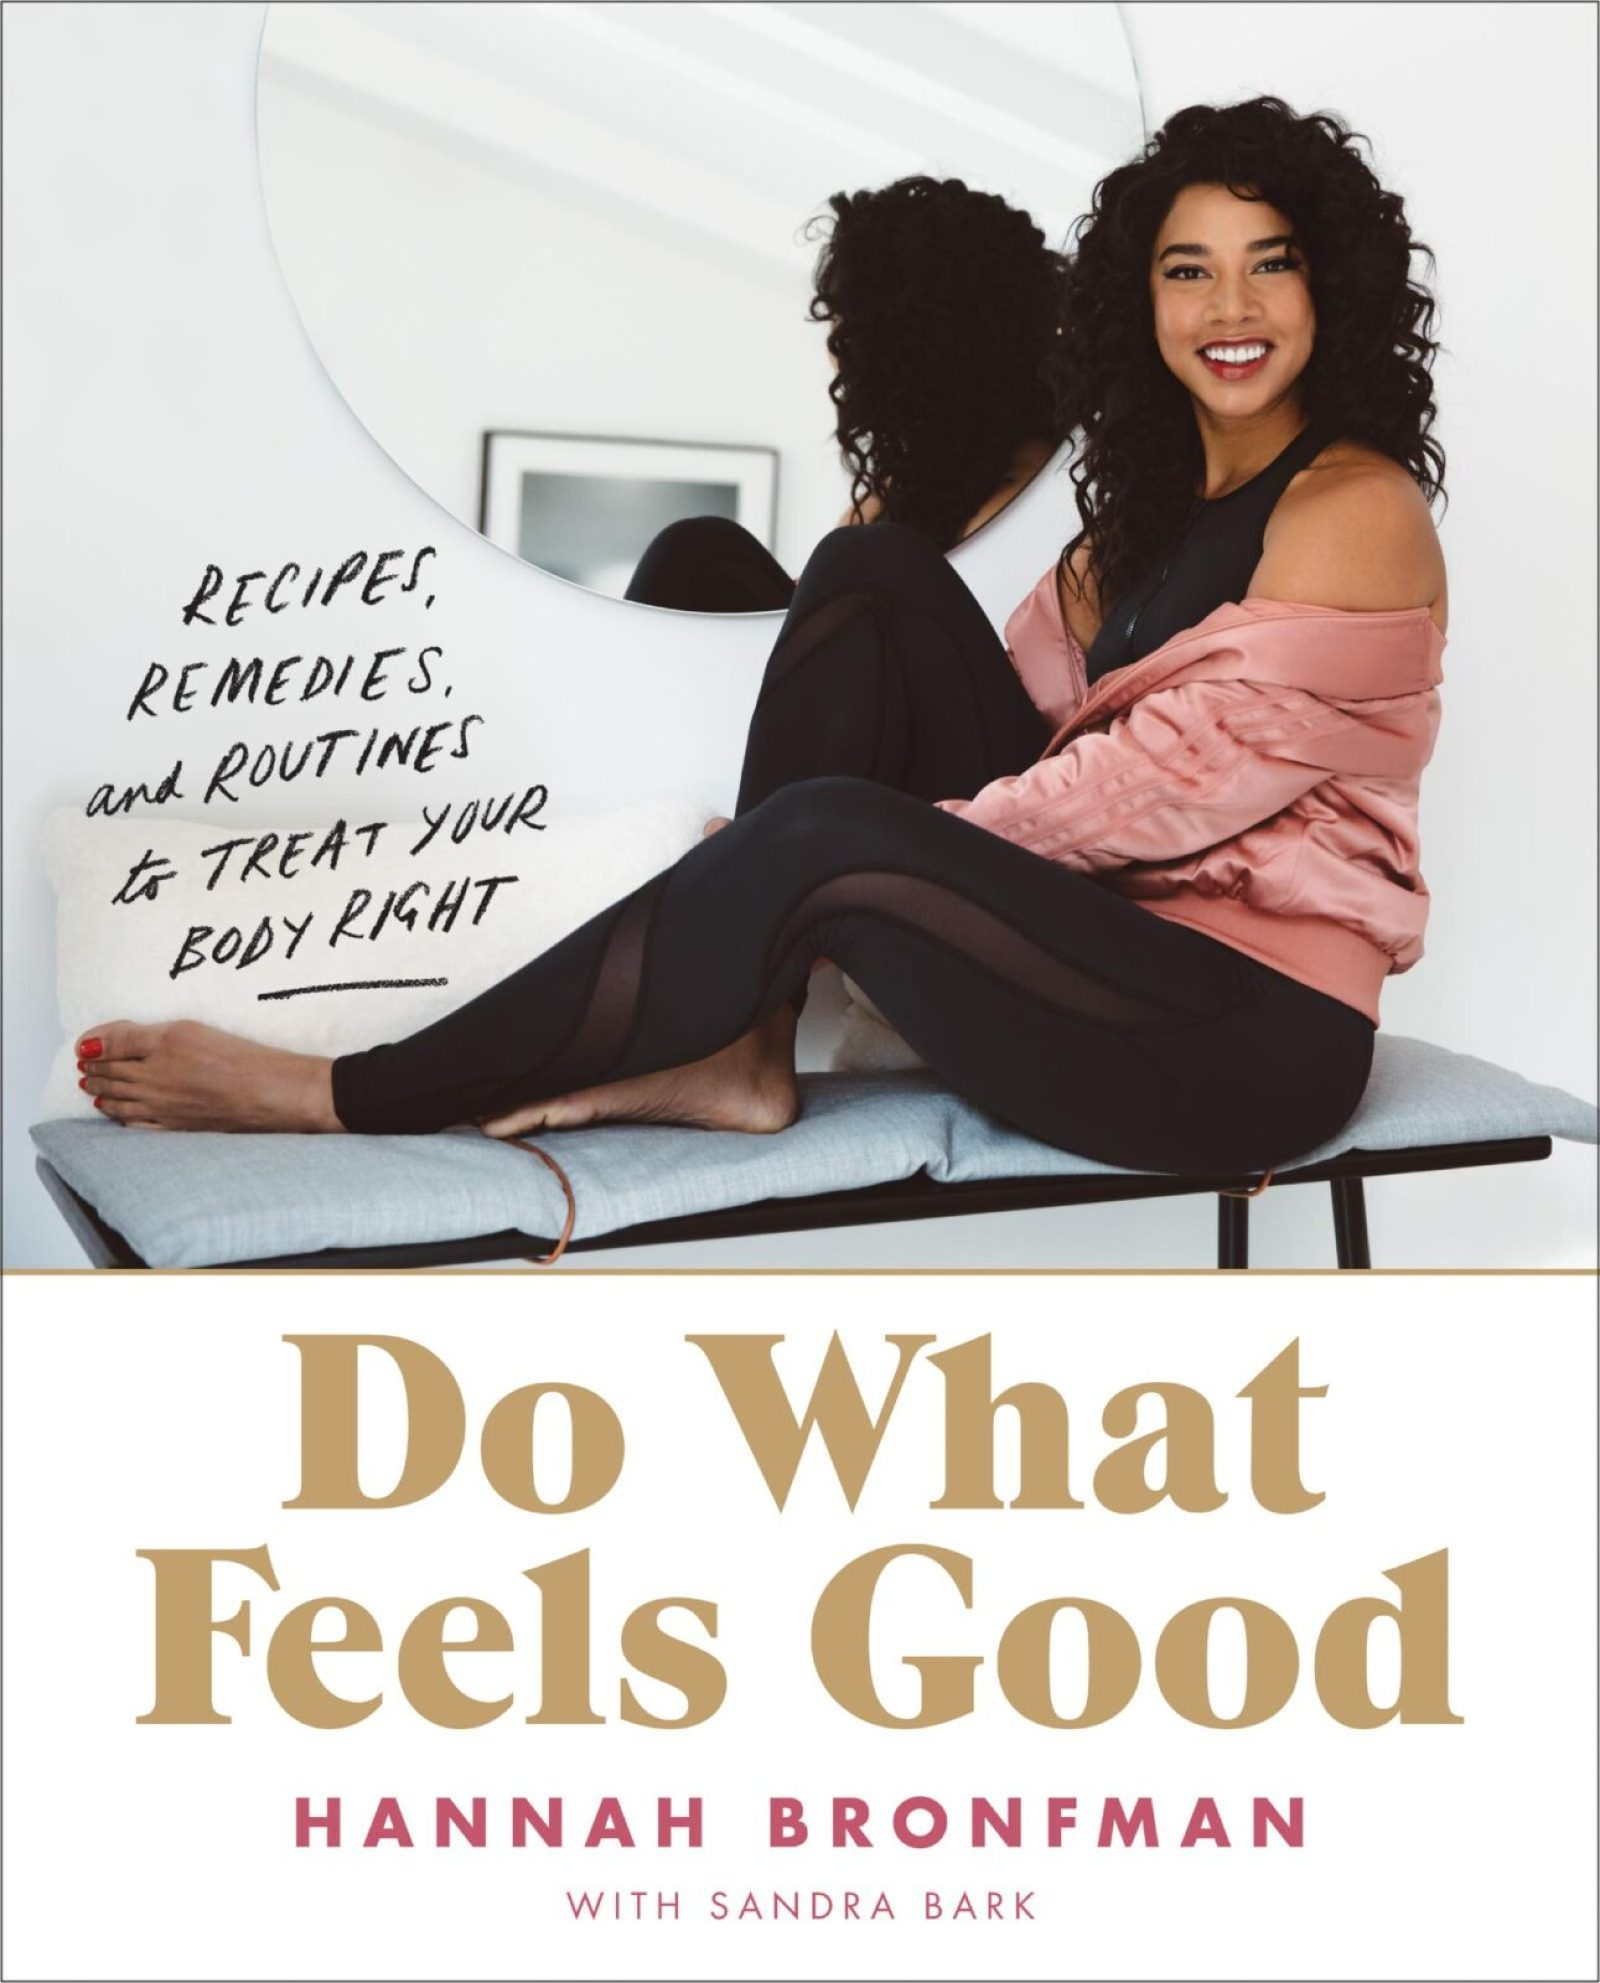 do what feels good hannah bronfman edit seven healthy cookbooks 2019 january